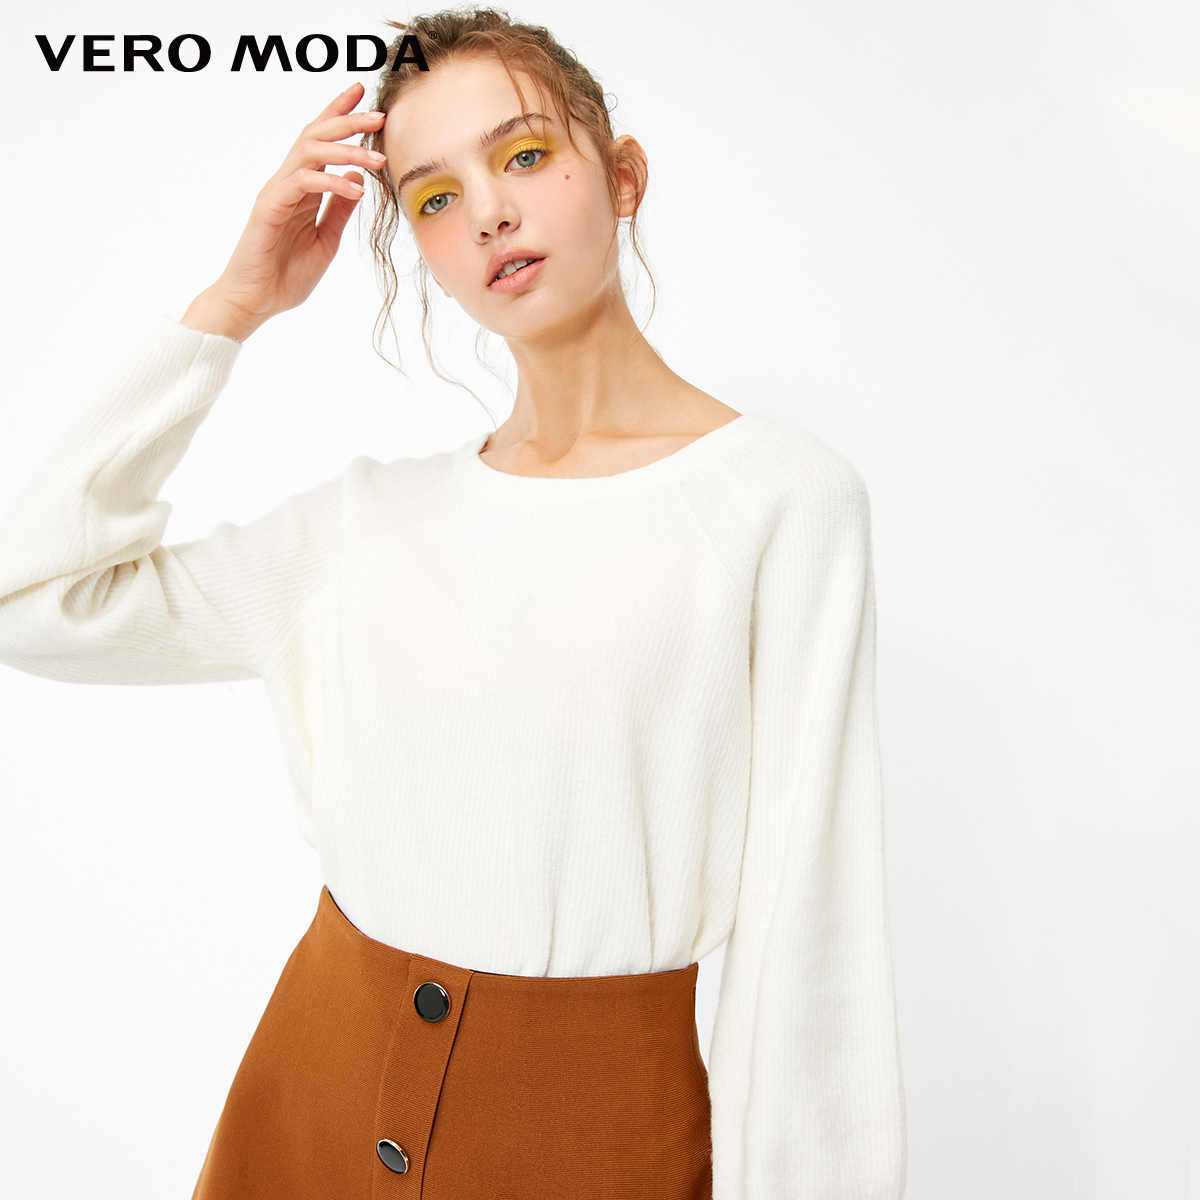 Vero Moda 2019 New Women's Bare Back Lace-up Raglan Sleeves Pure Knit  Sweater | 319113514